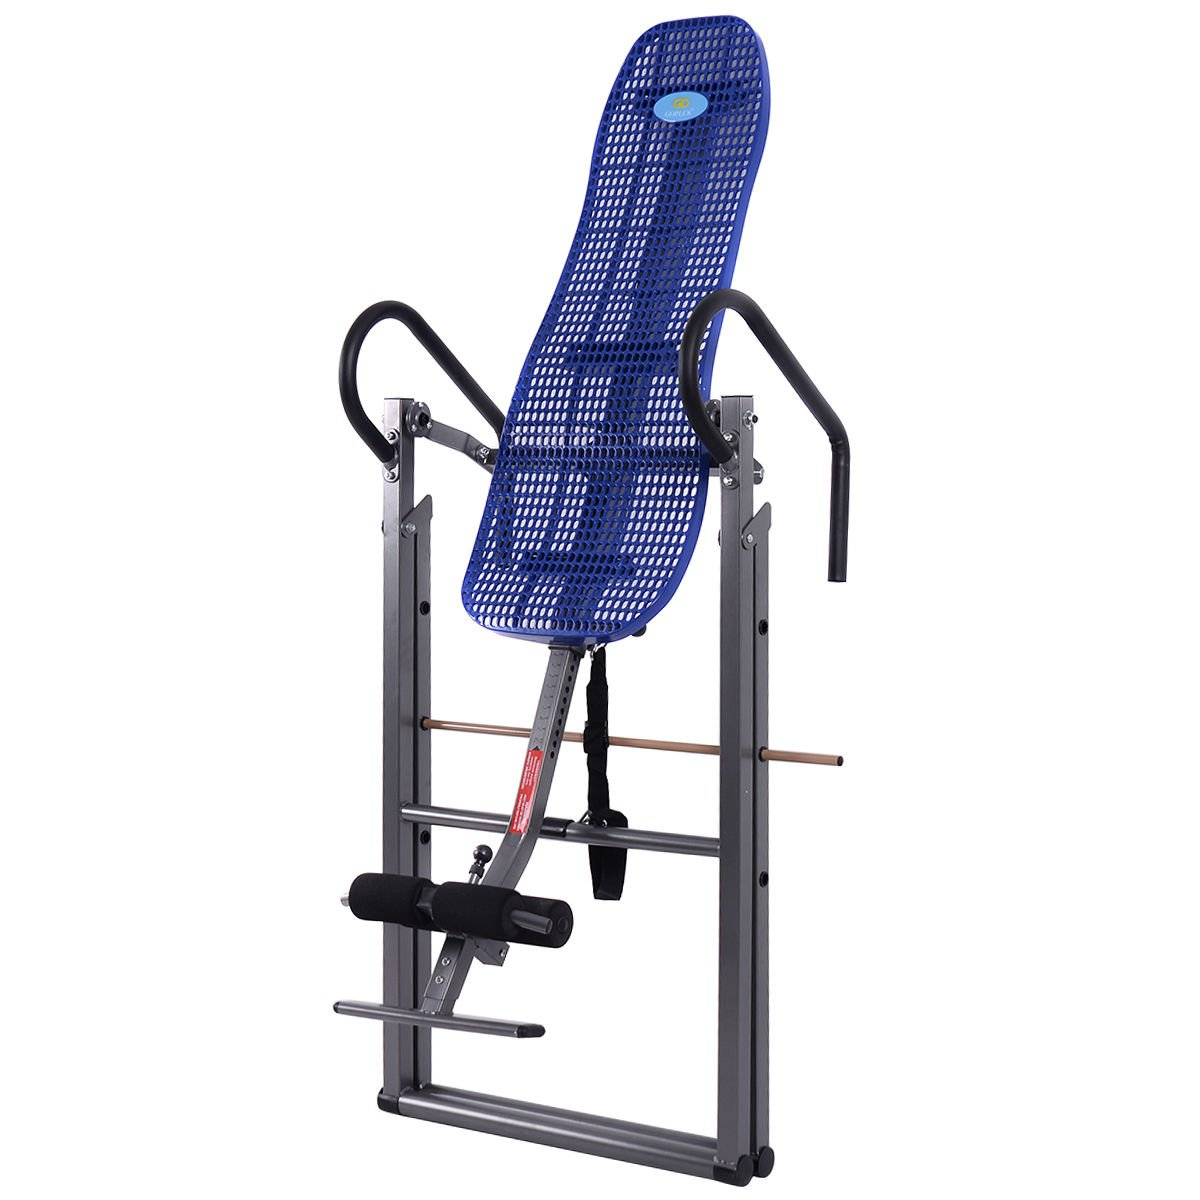 New Foldable ABS Inversion Table Gravity Therapy Back Pain Fitness Reflexology Blue by MTN Gearsmith (Image #4)